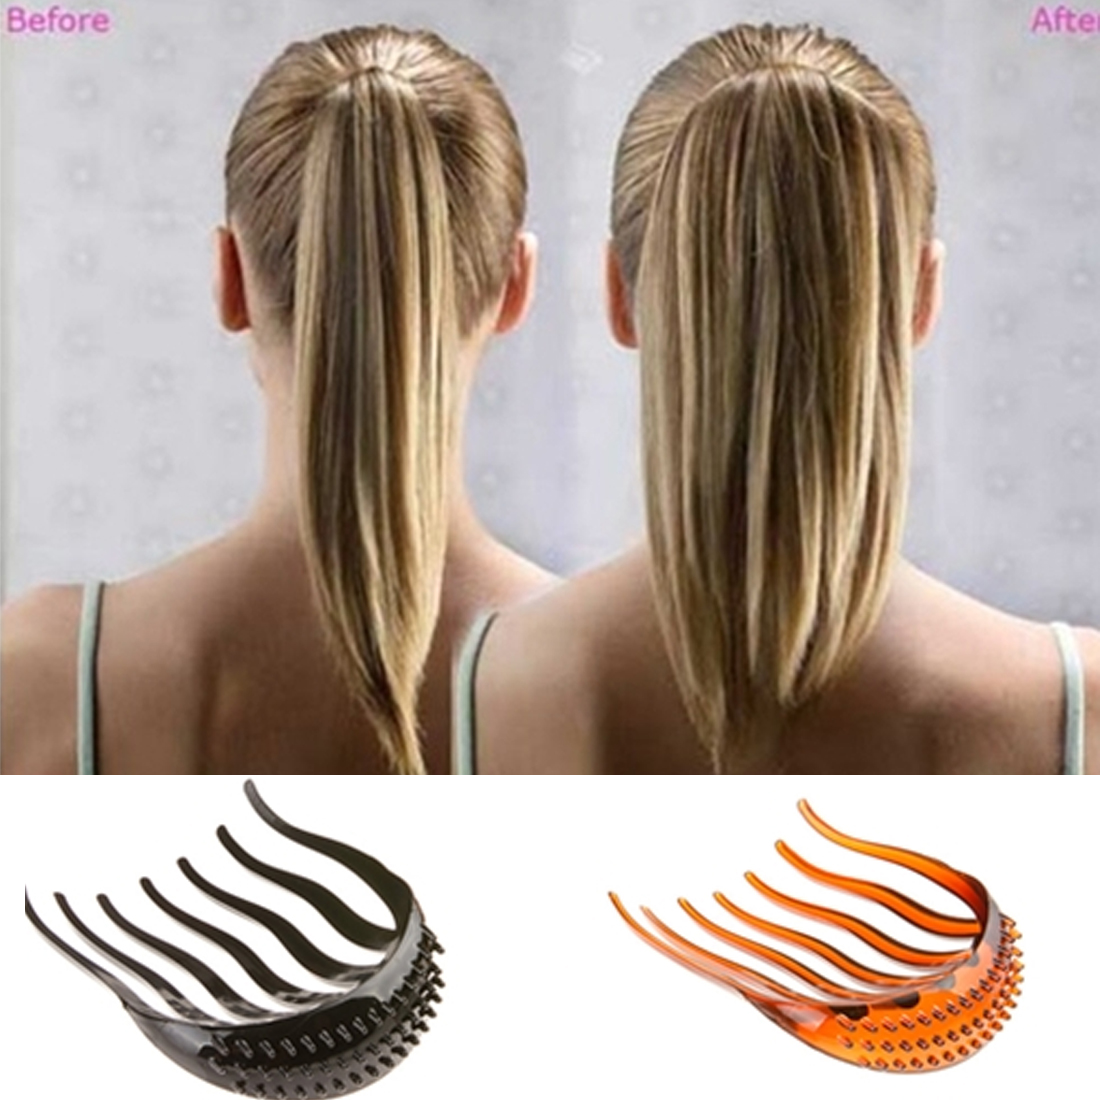 Lady Girl Tools Volume Inserts Hair Clip Hairpins Bouffant Ponytail Comb Grips Headwear Ornaments Accessories For Woman